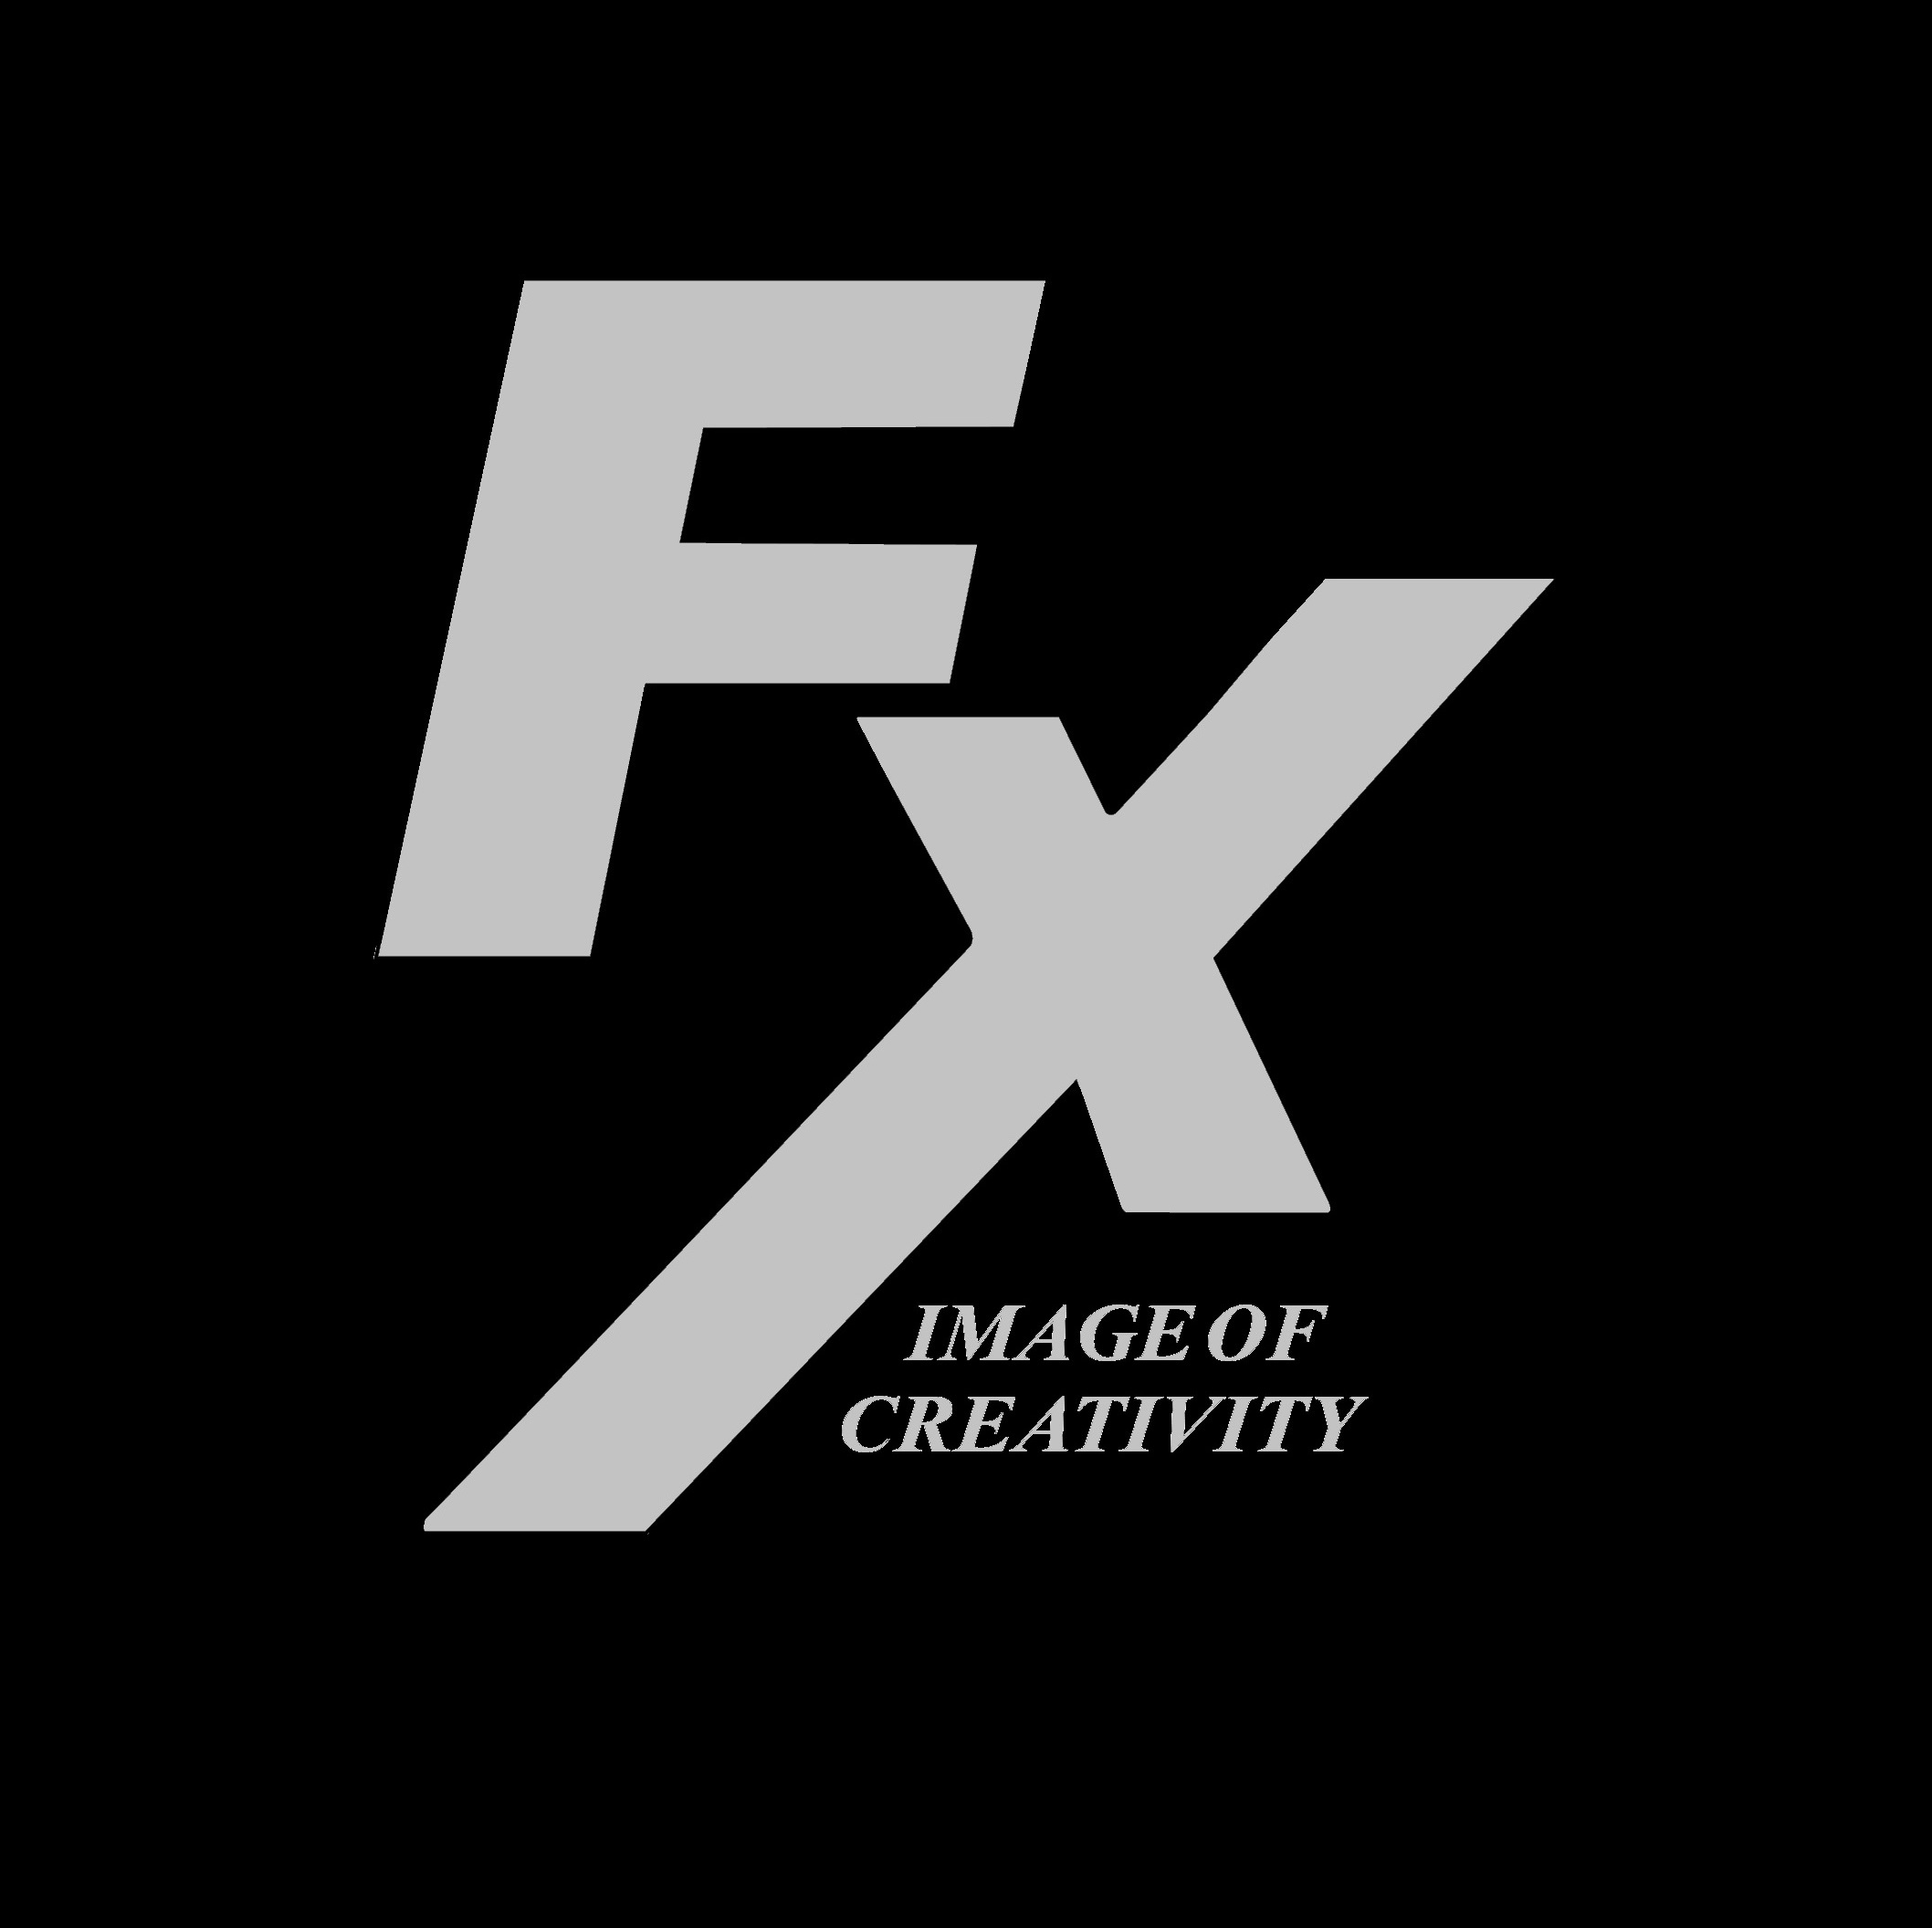 Flex Logo - Black Background - R2